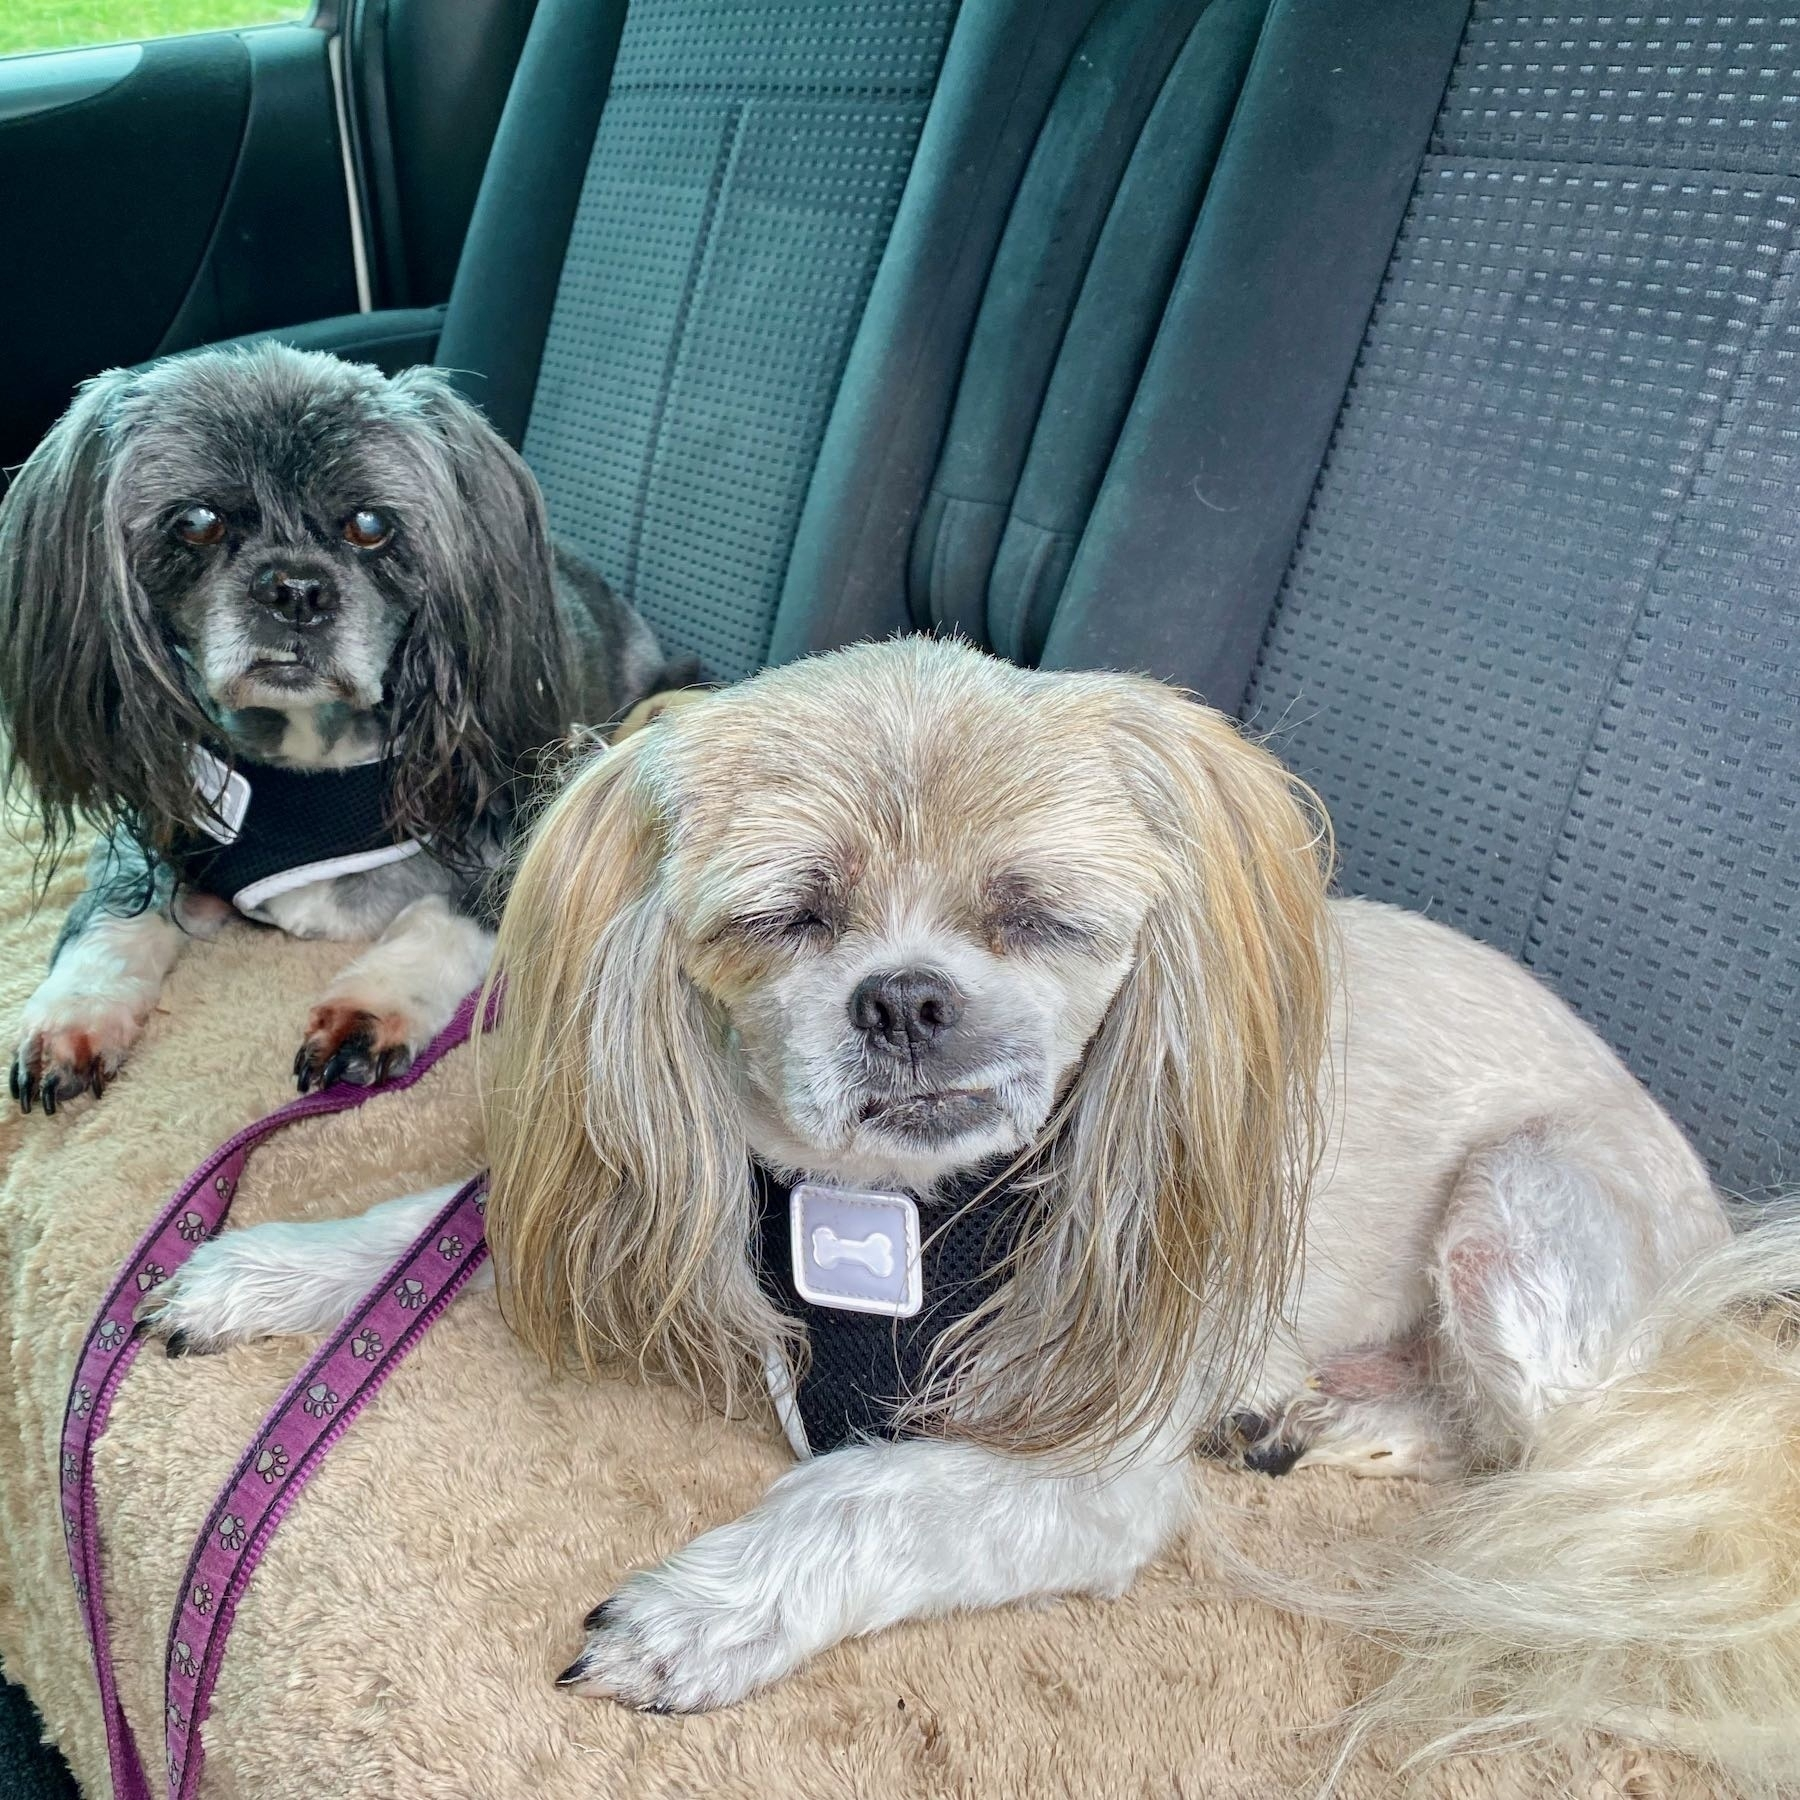 Two trim and tidy small dogs.